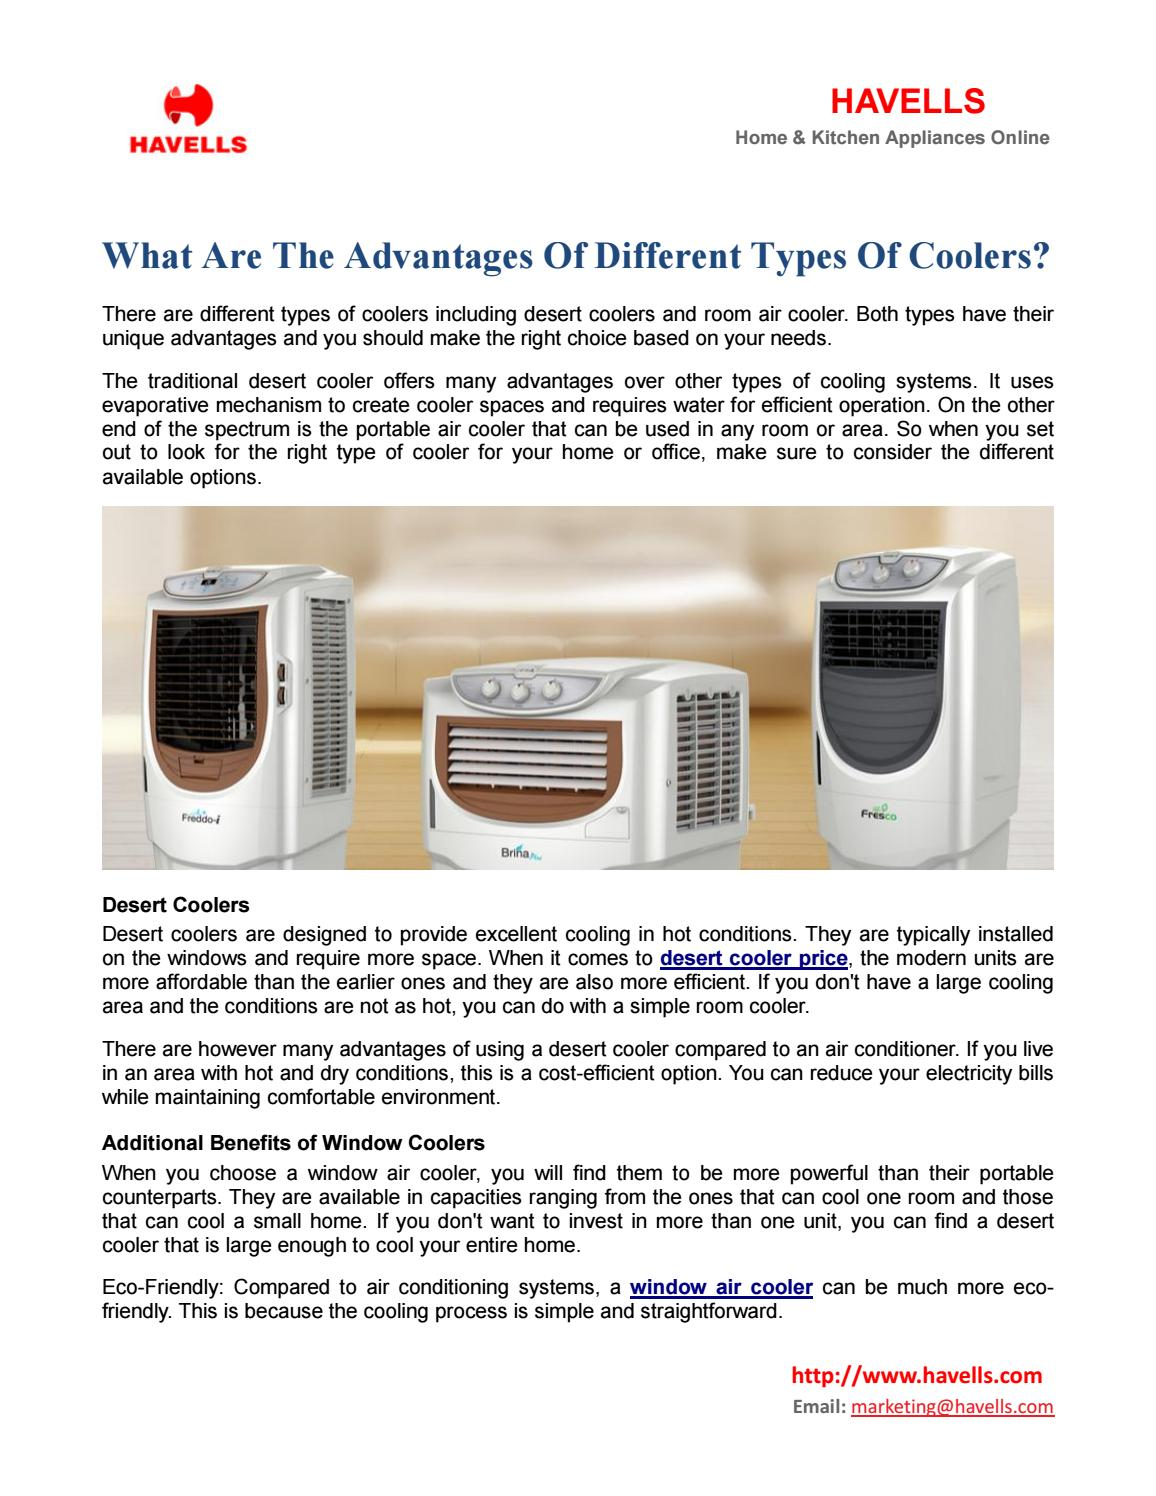 What are the advantages of different types of coolers doc by Nancy ...